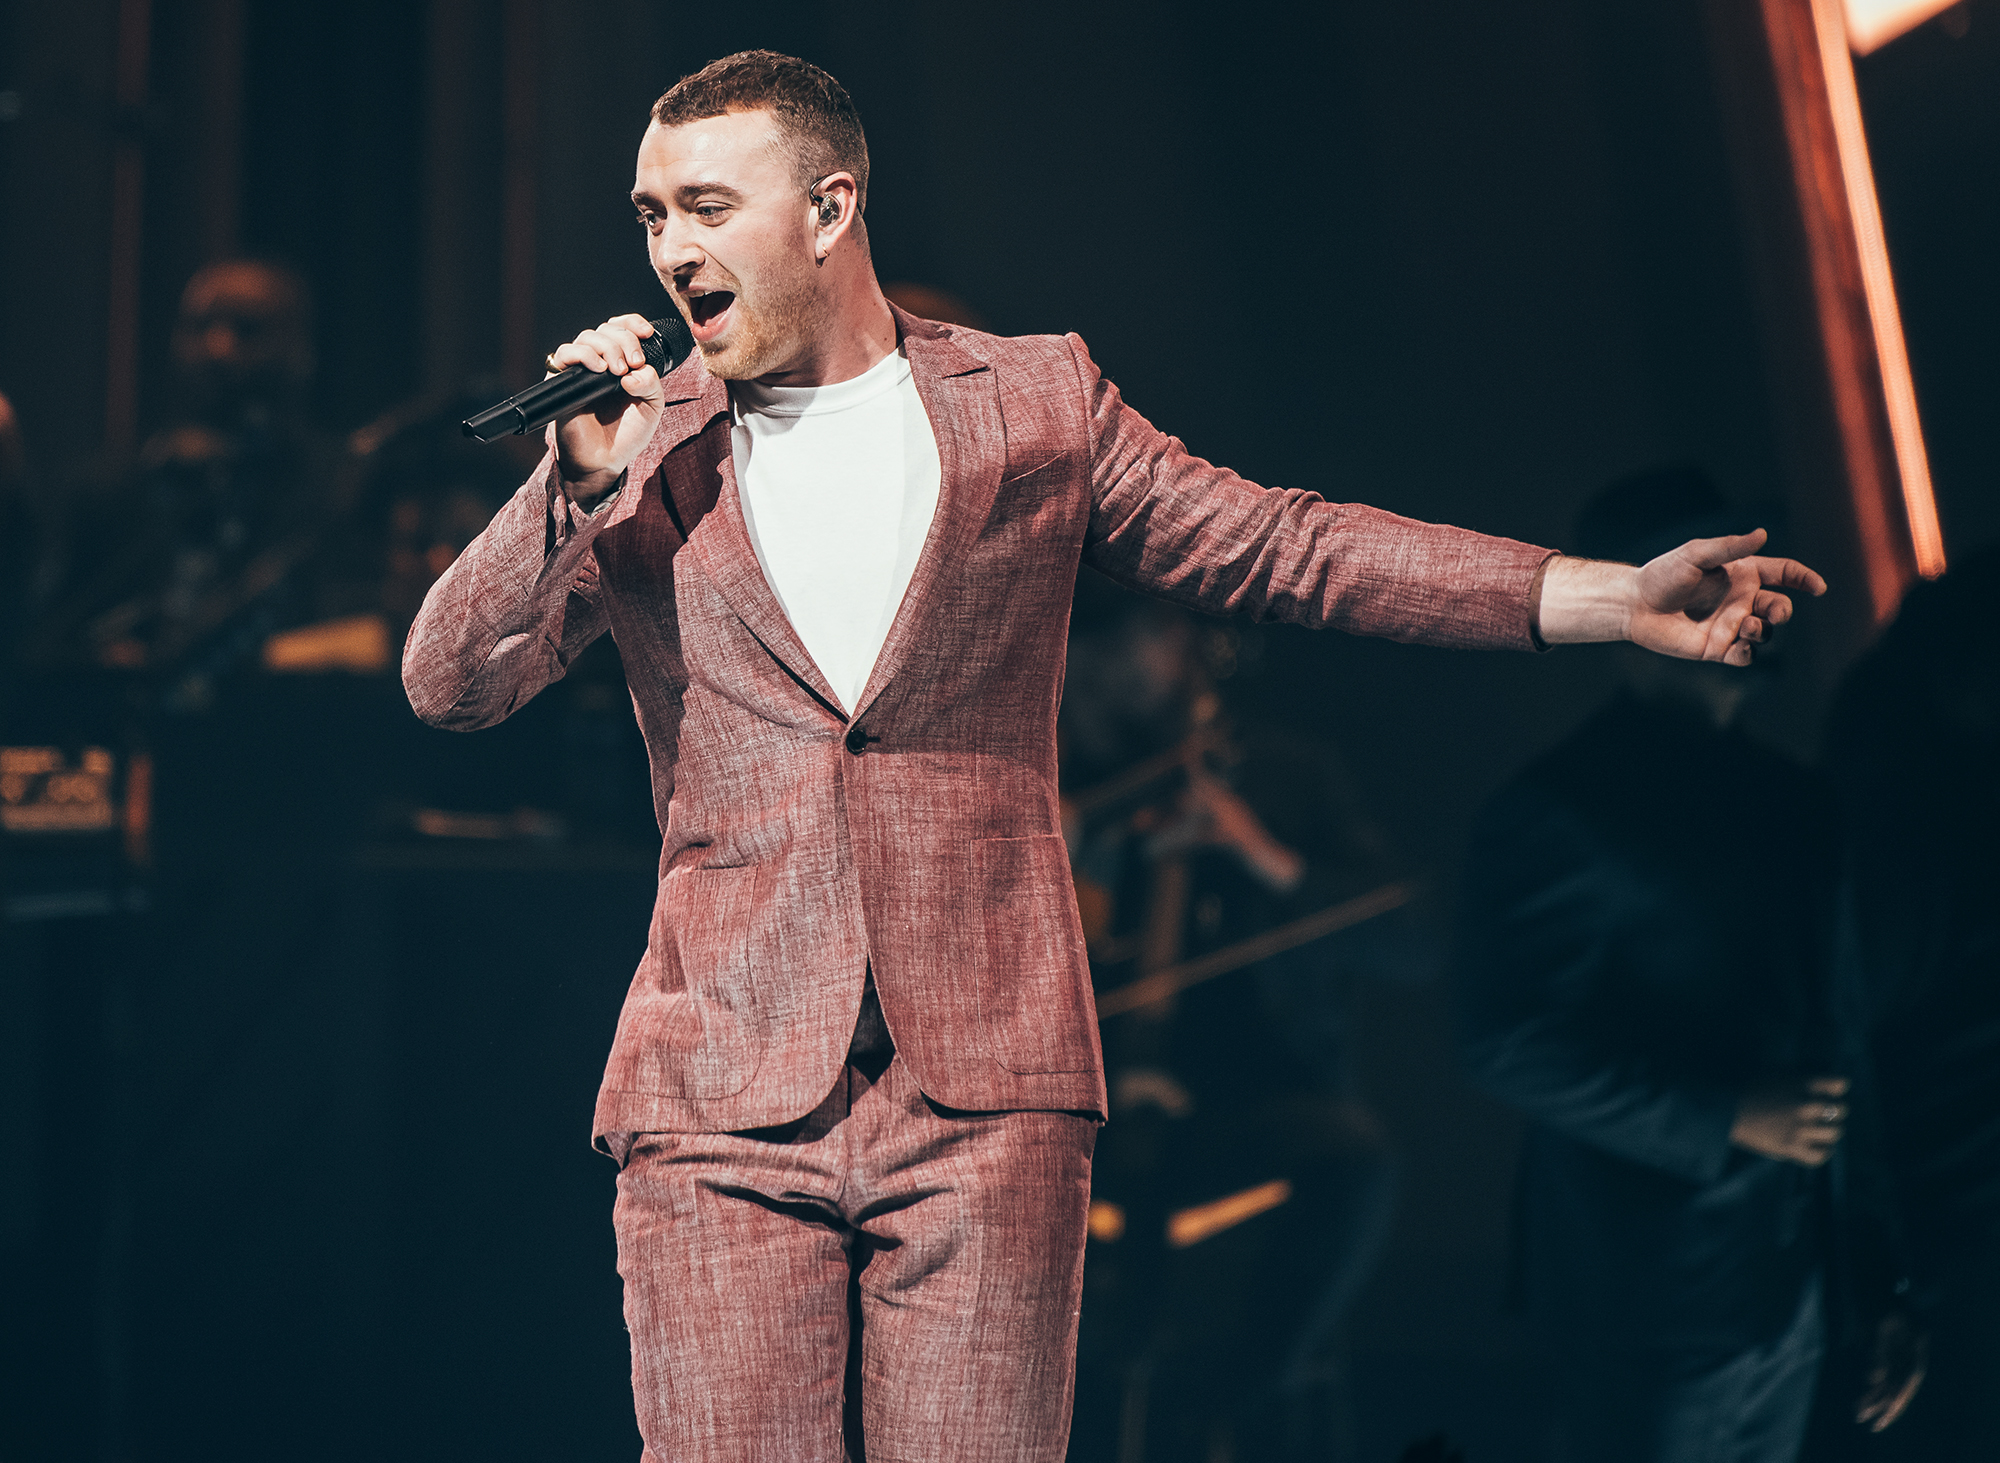 Sam Smith Performs At Sheffield Arena